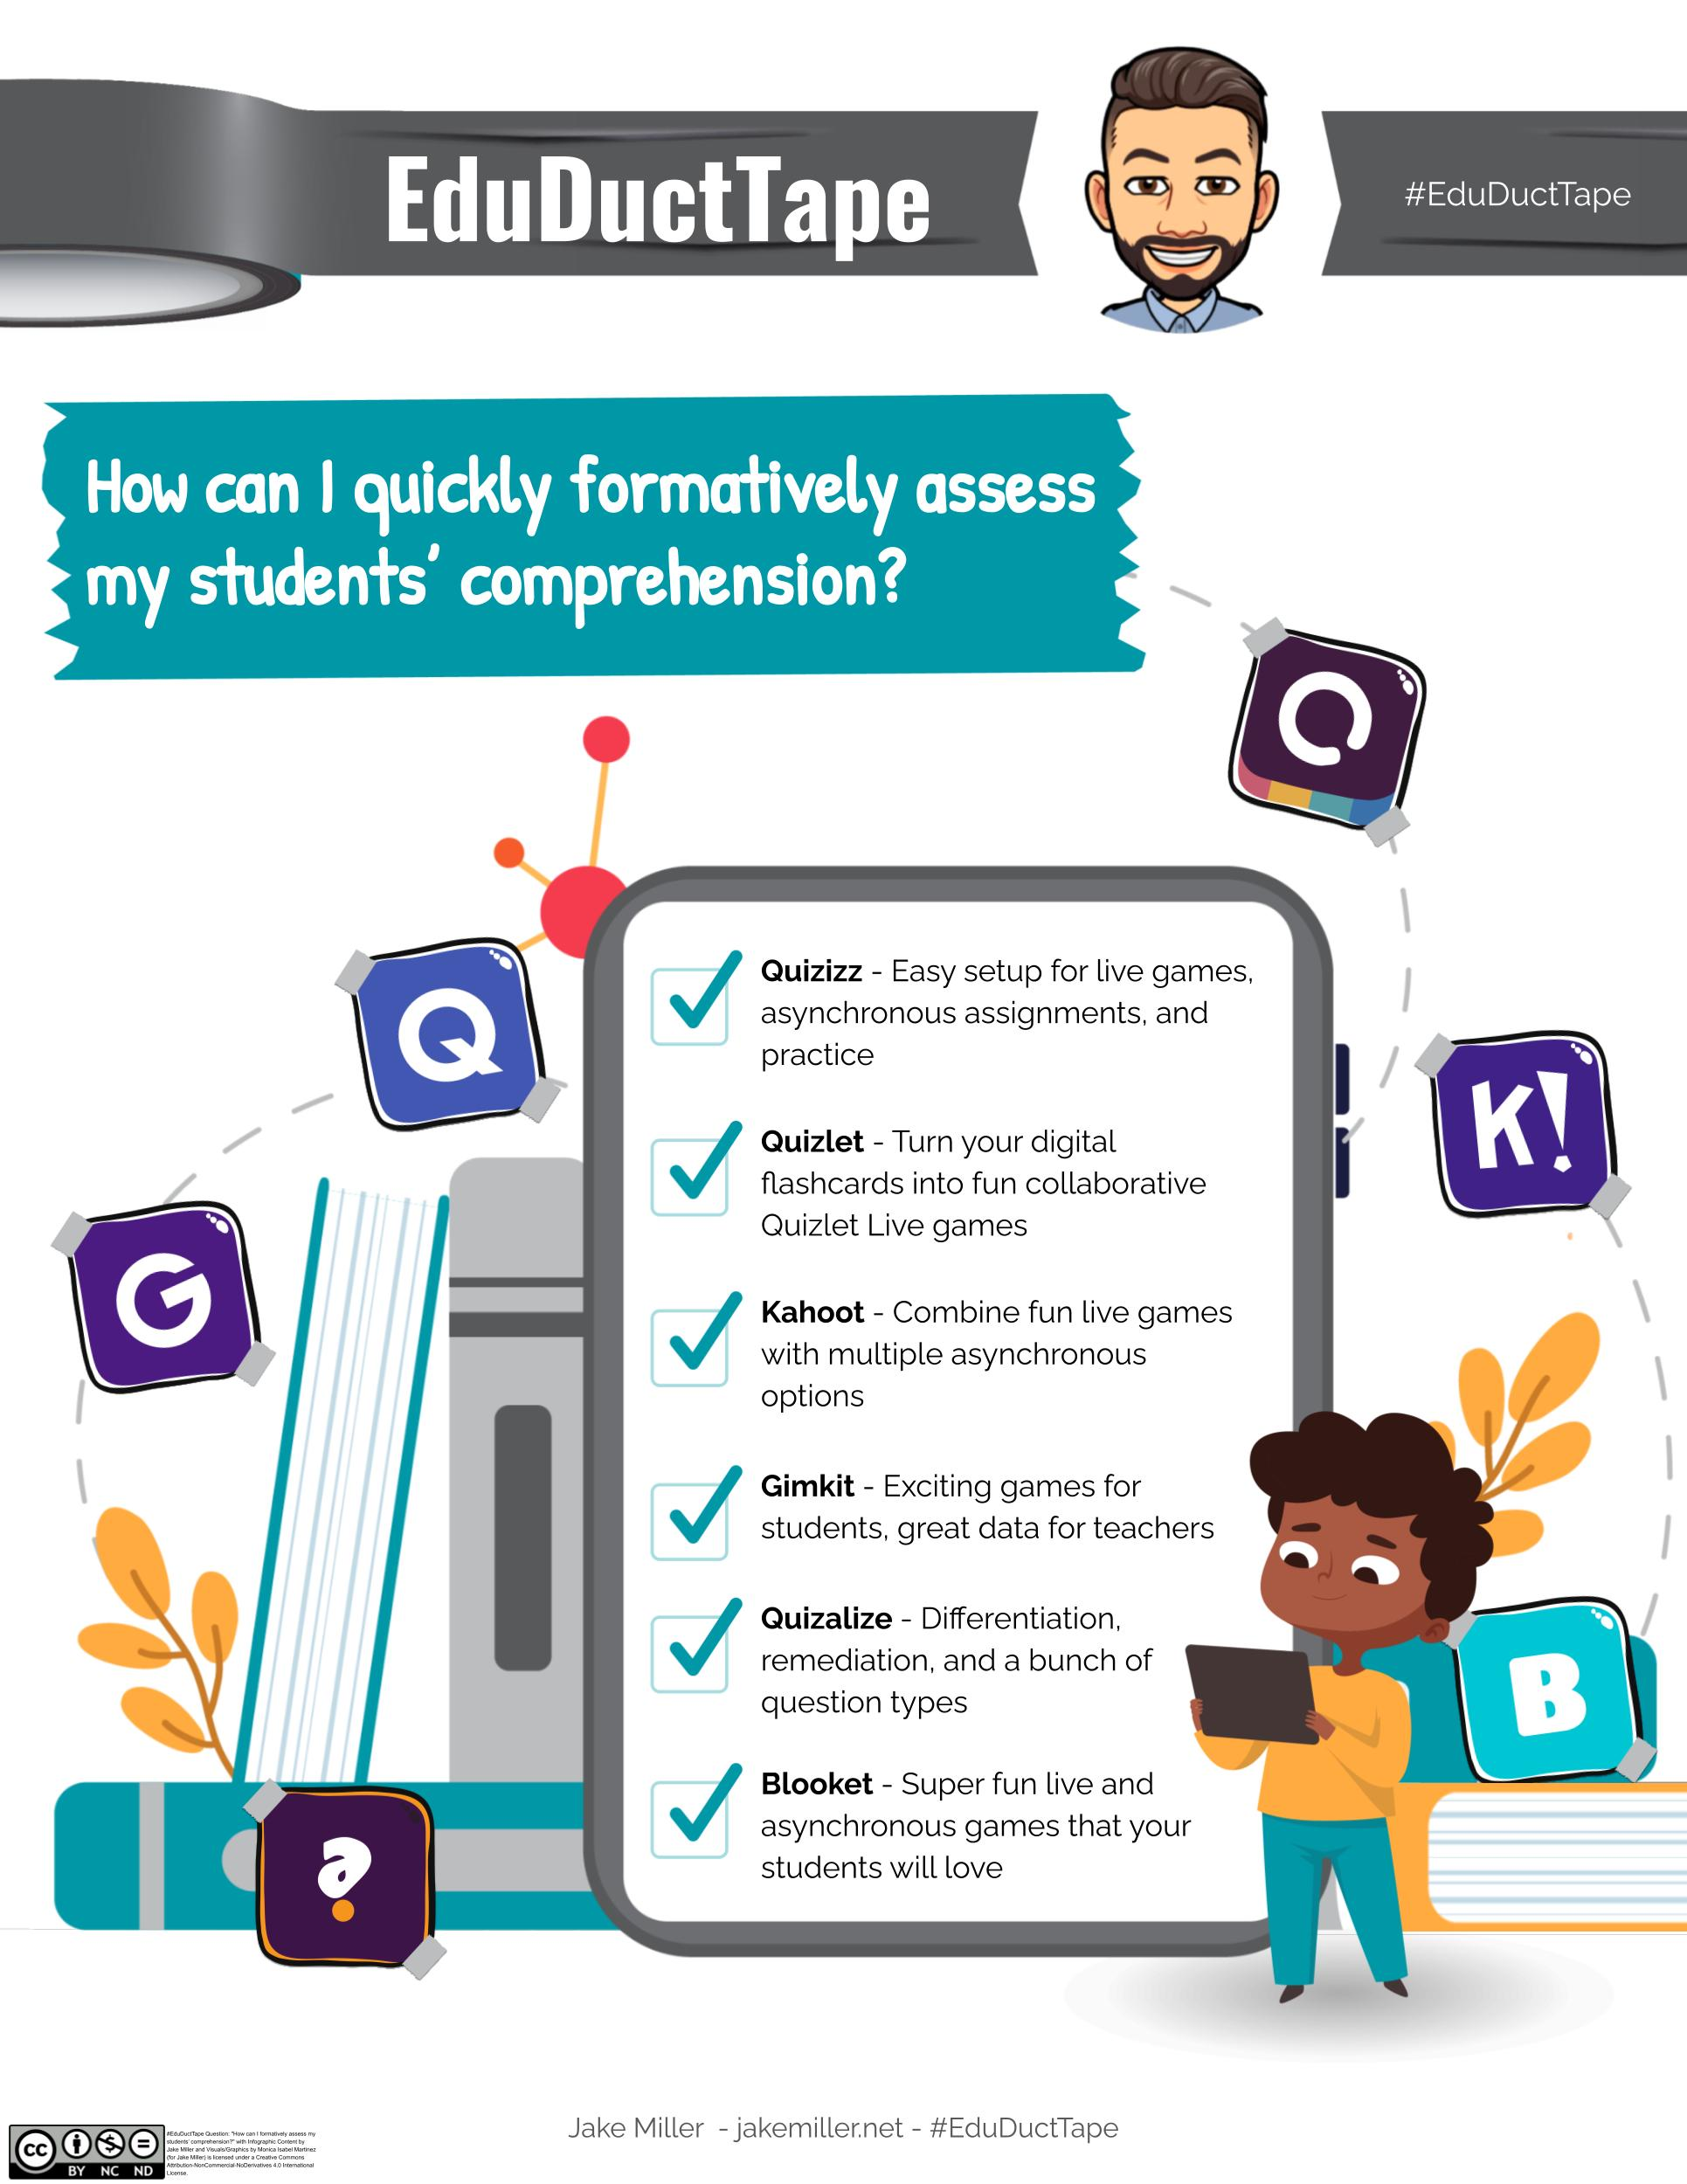 """This infographic is for the #EduDuctTape question """"How can I quickly formatively assess my students' comprehension?"""" The image shows a boy using a tablet, some books, the logos for the 6 tools, and a tablet screen with the following text on it: """"Quizizz - Easy setup for live games, asynchronous assignments, and practice. Quizlet - Turn your digital flashcards into fun collaborative Quizlet Live games. Kahoot - Combine fun live games with multiple asynchronous option. Gimkit - Exciting games for students, great data for teachers. Quizalize - Differentiation, remediation, and a bunch of question types. Blooket - Super fun live and asynchronous games that your students will love."""""""